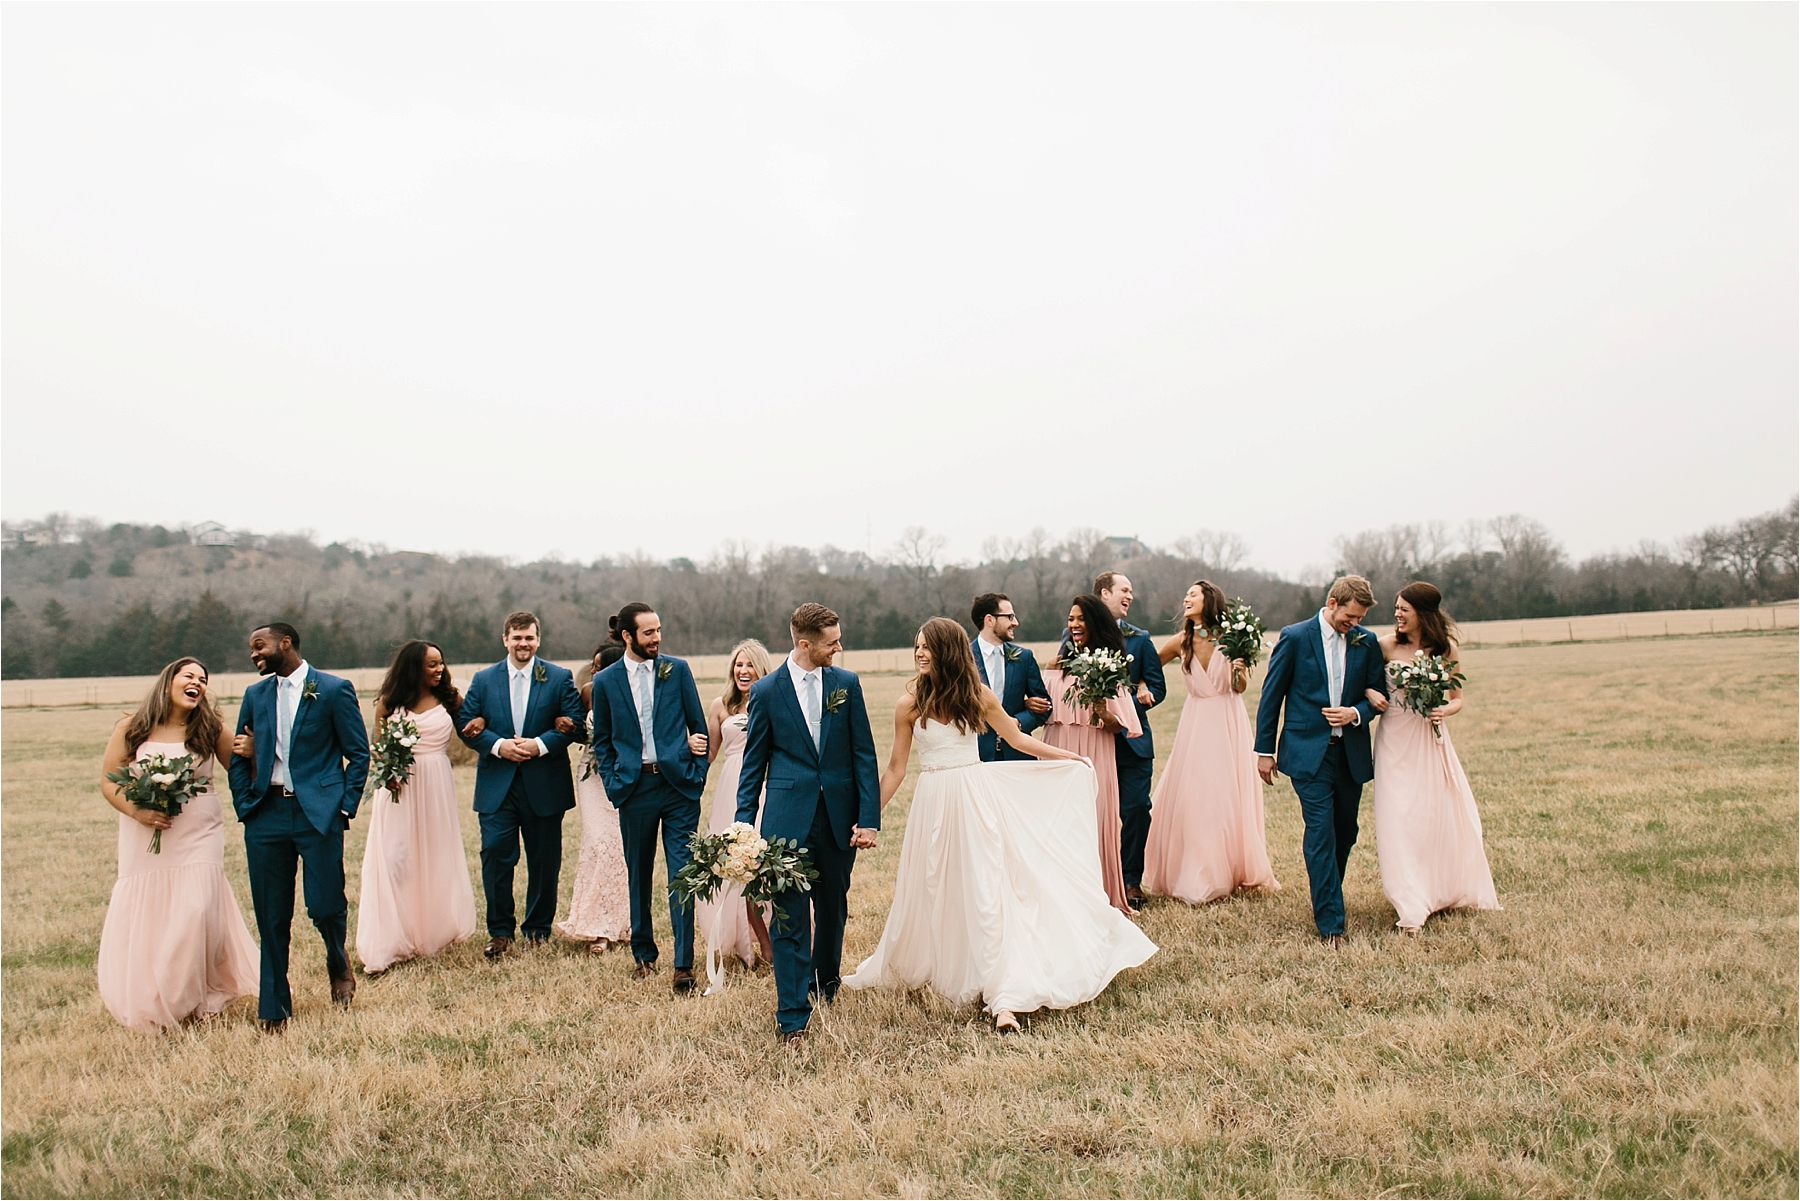 Lauren + Matt __ an intimate, emotional, blush pink, navy blue, and greenery toned wedding accents at the Brooks at Weatherford by North Texas Wedding Photographer Rachel Meagan Photography089